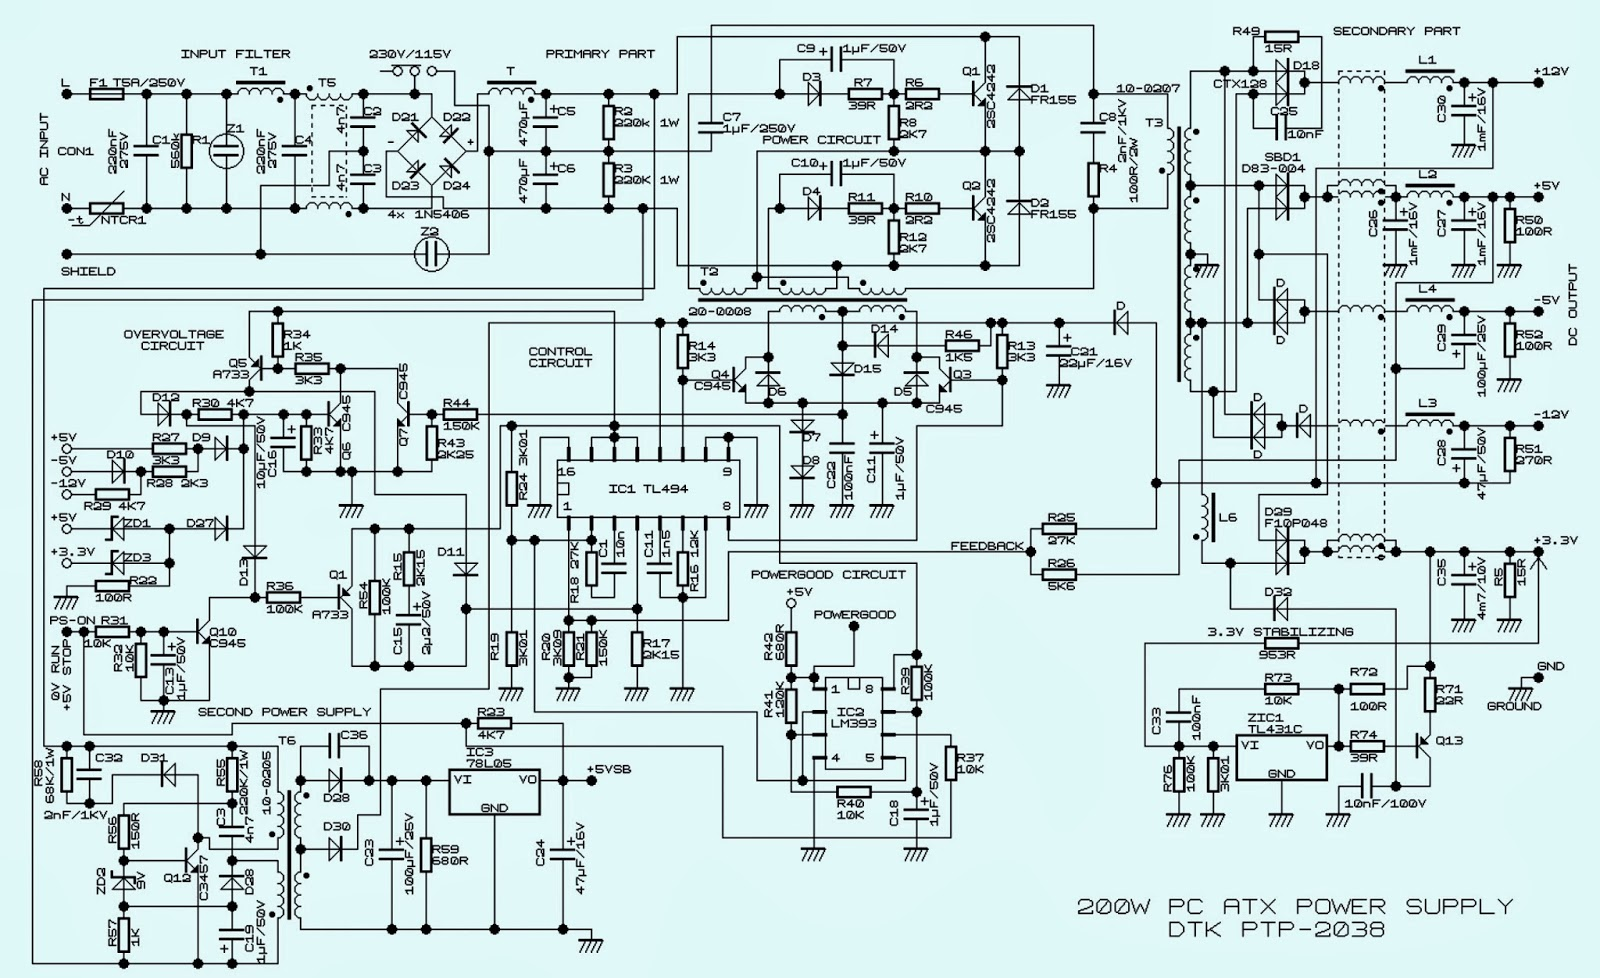 computer logic diagram wiring diagrams wnicomputer logic diagram wiring diagram computer logic diagram [ 1600 x 978 Pixel ]